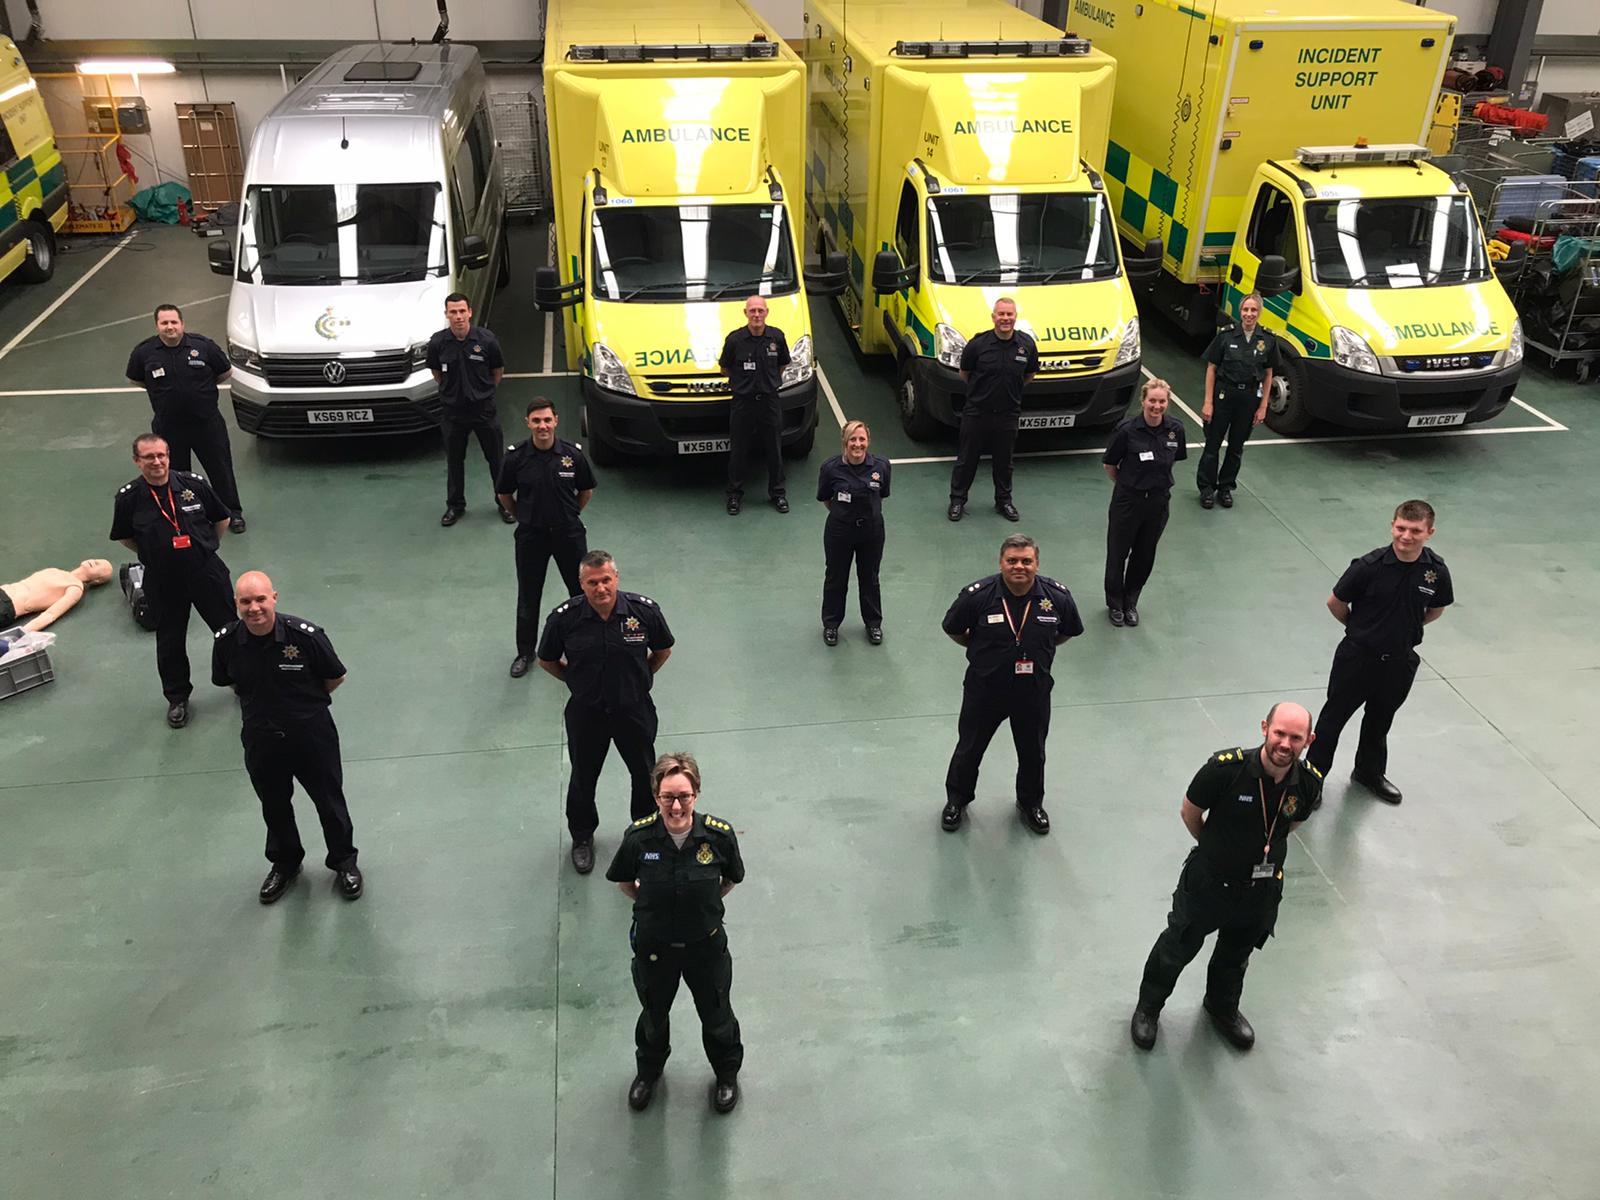 13 fire service members and 2 emas members stood 2m apart in front of ambulance vehicles